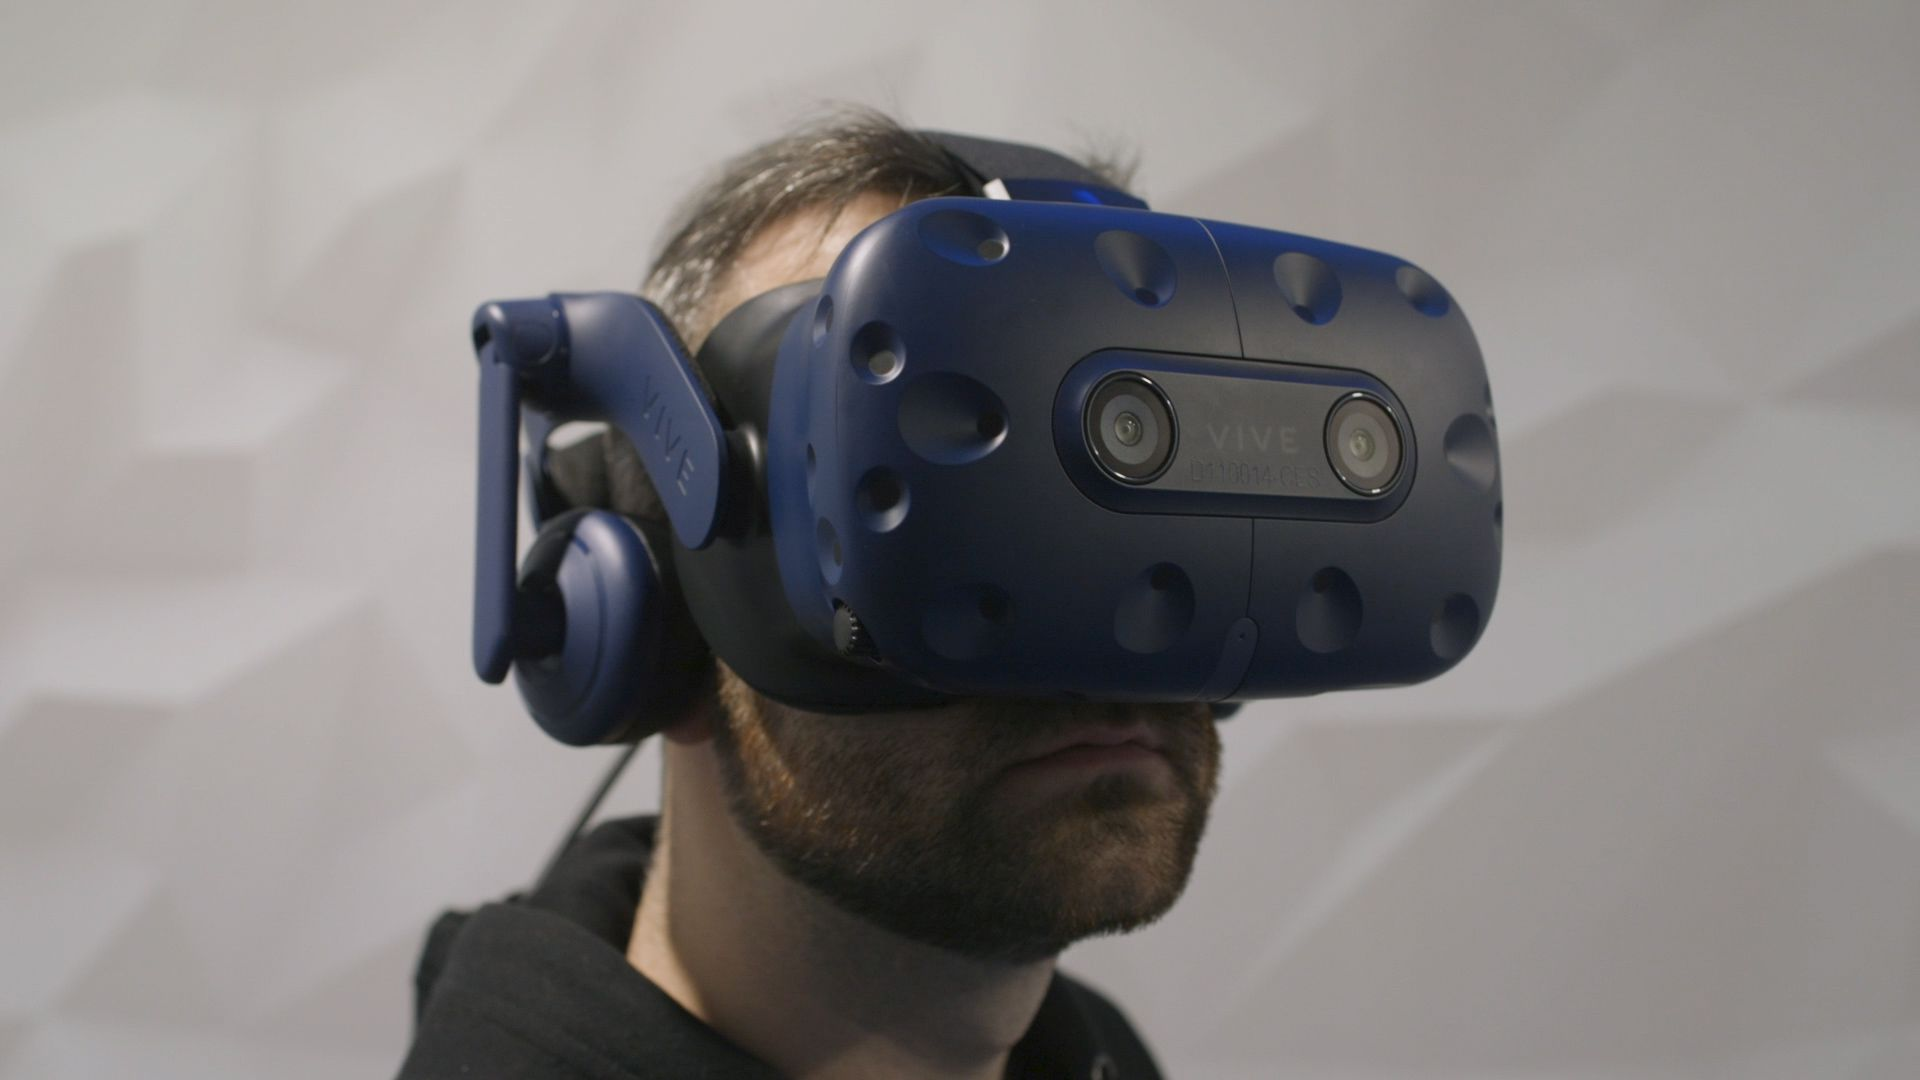 7bb2c430a4f HTC announces new Vive Pro Eye virtual reality headset with native eye  tracking - The Verge